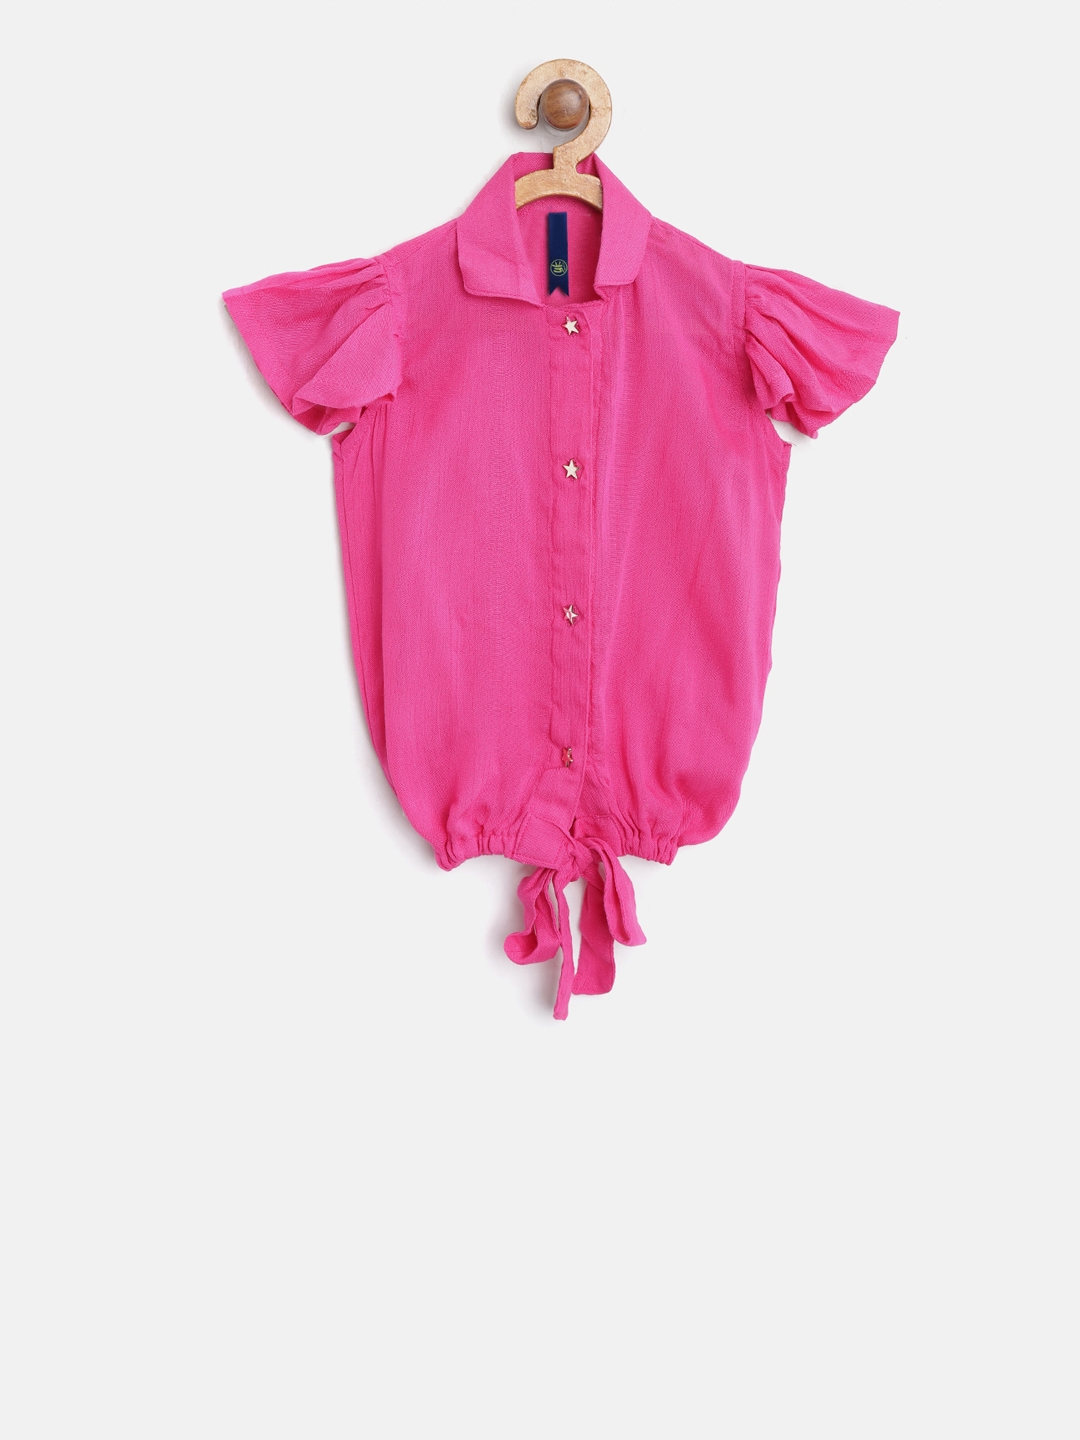 YK Girls Pink Solid Shirt Style Top with Tie Ups